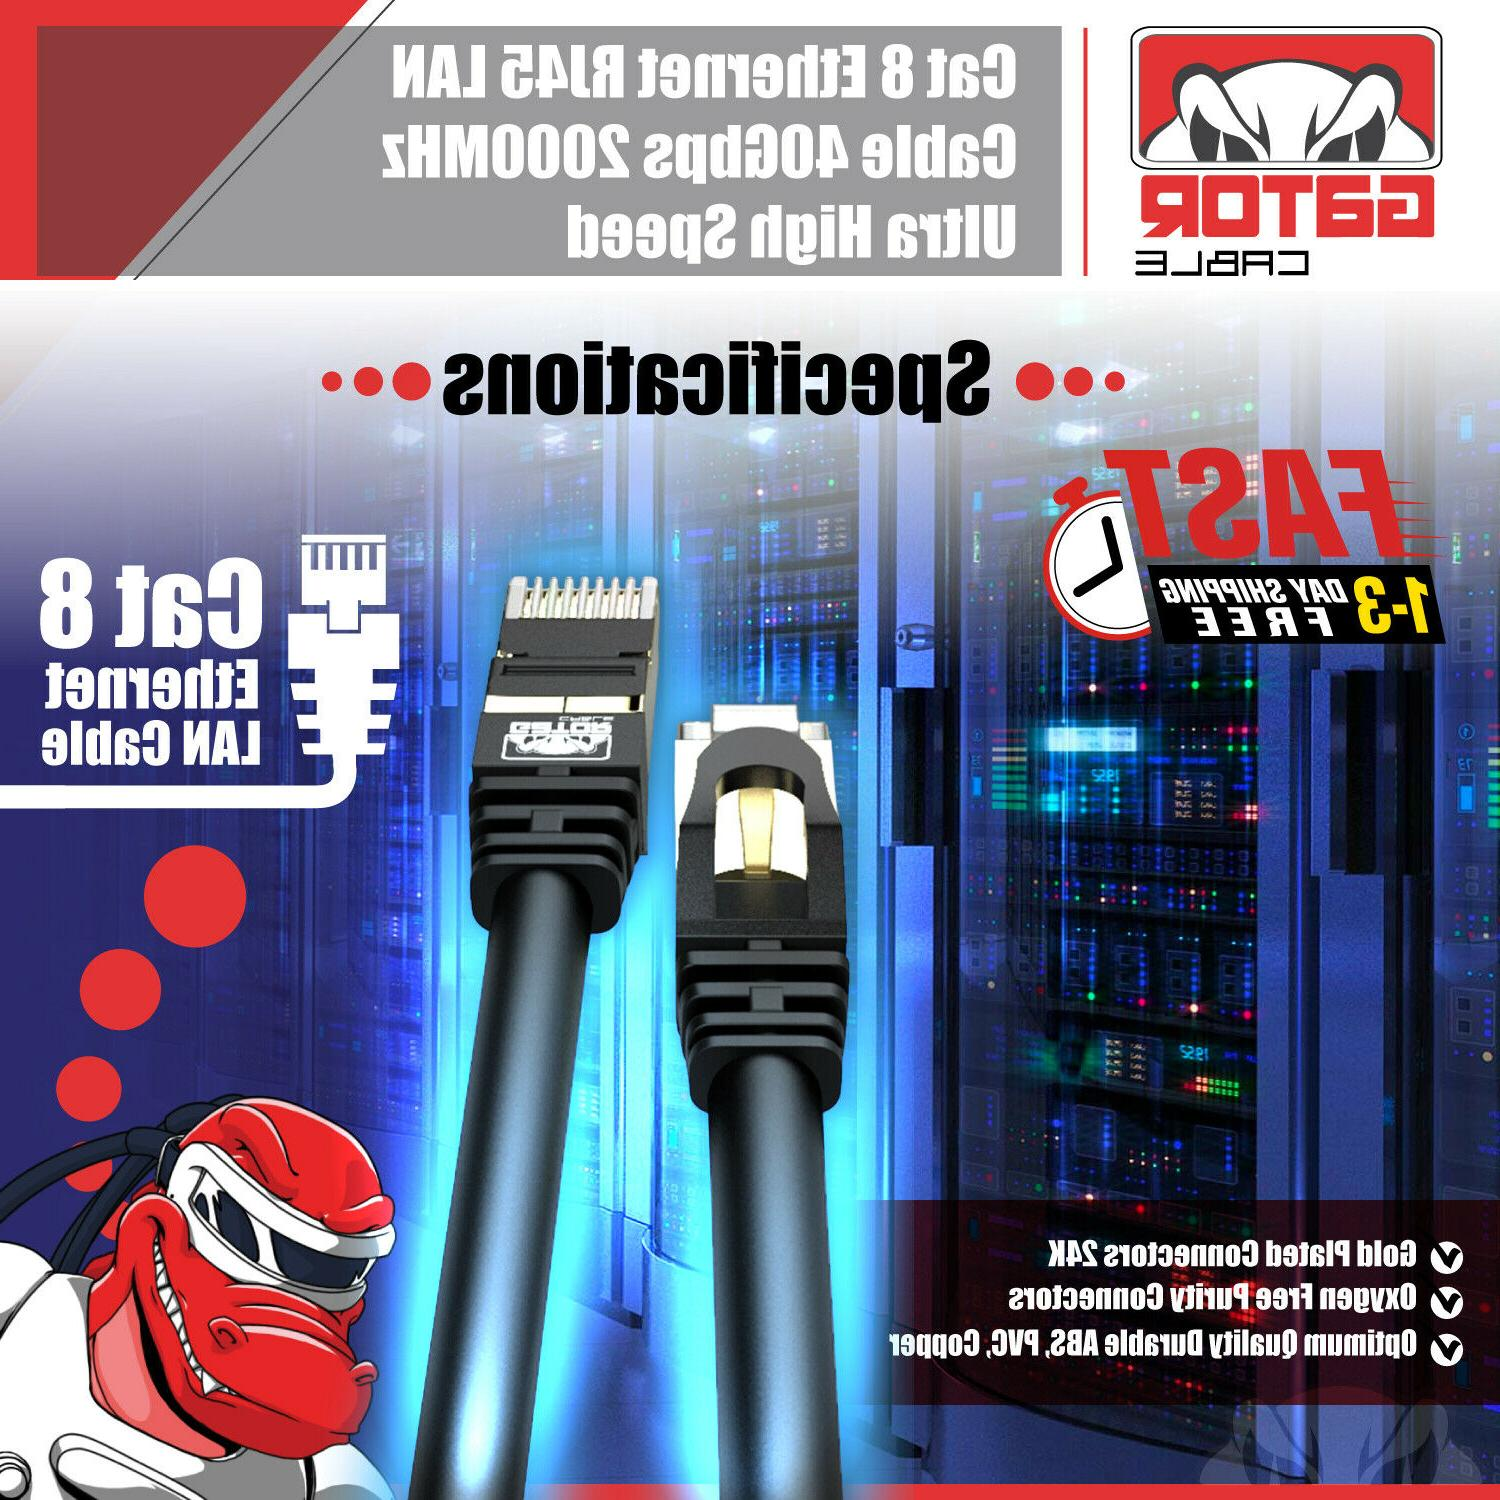 Cat RJ45 Cable Super 40Gbps Patch LAN Gold Plated